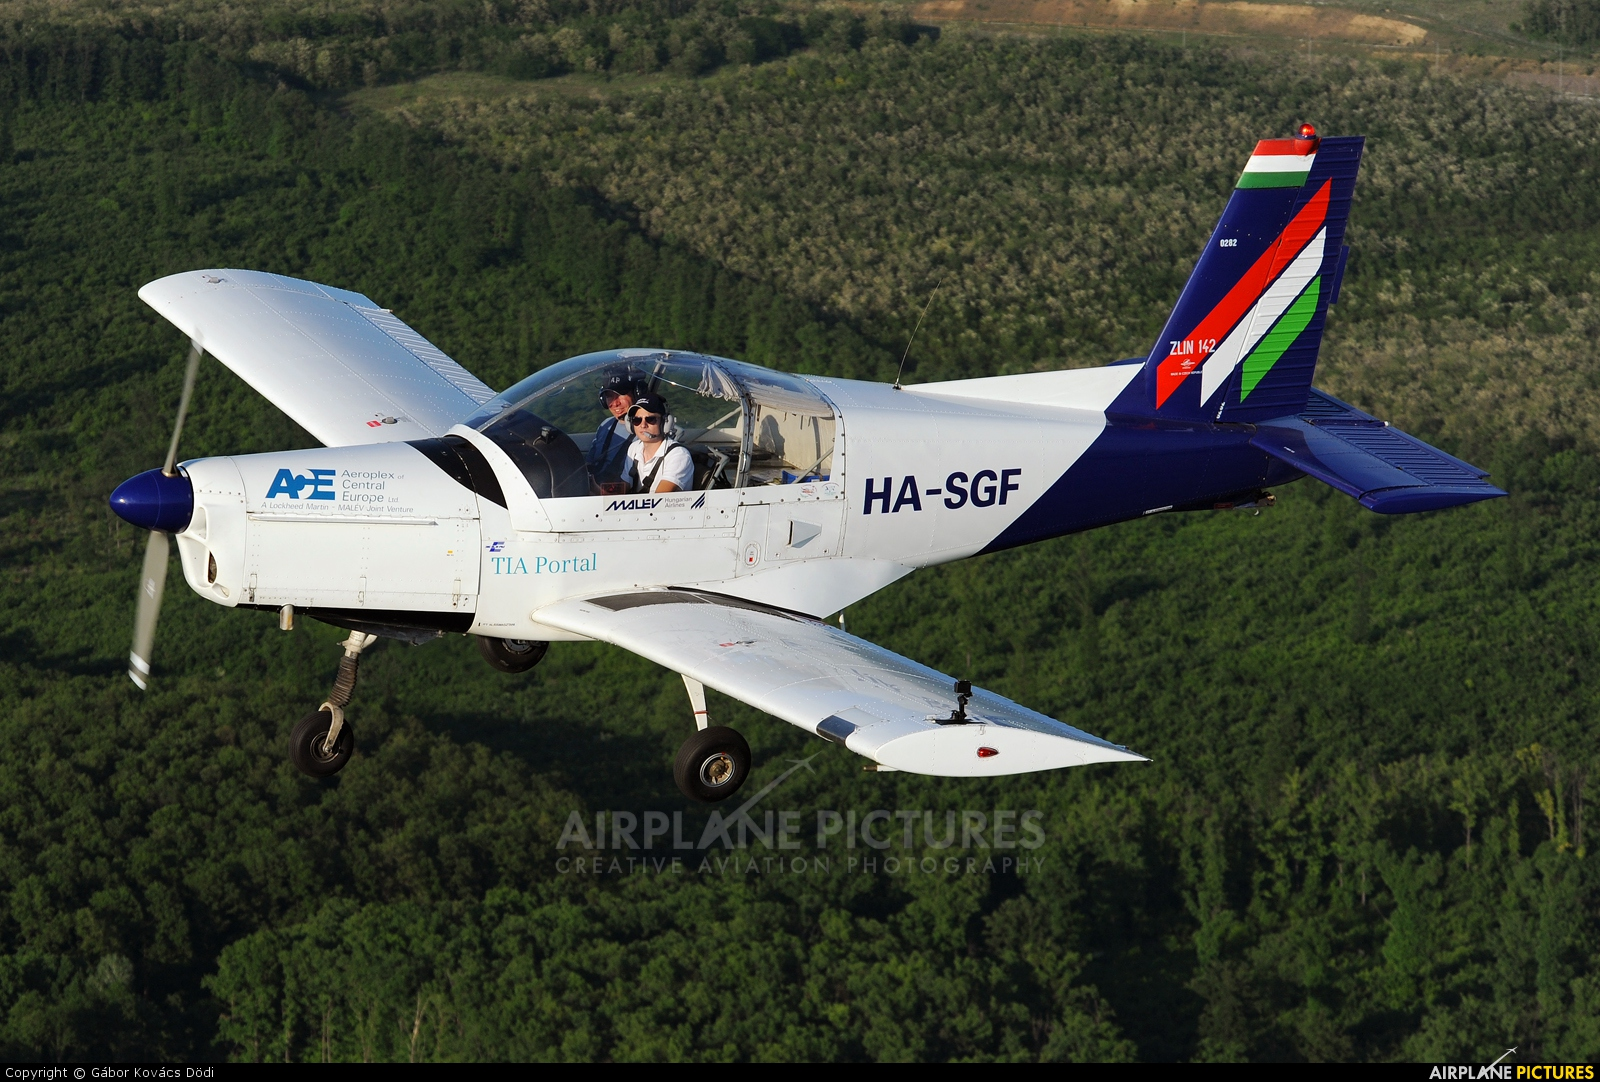 Malév Aero Club HA-SGF aircraft at In Flight - Hungary